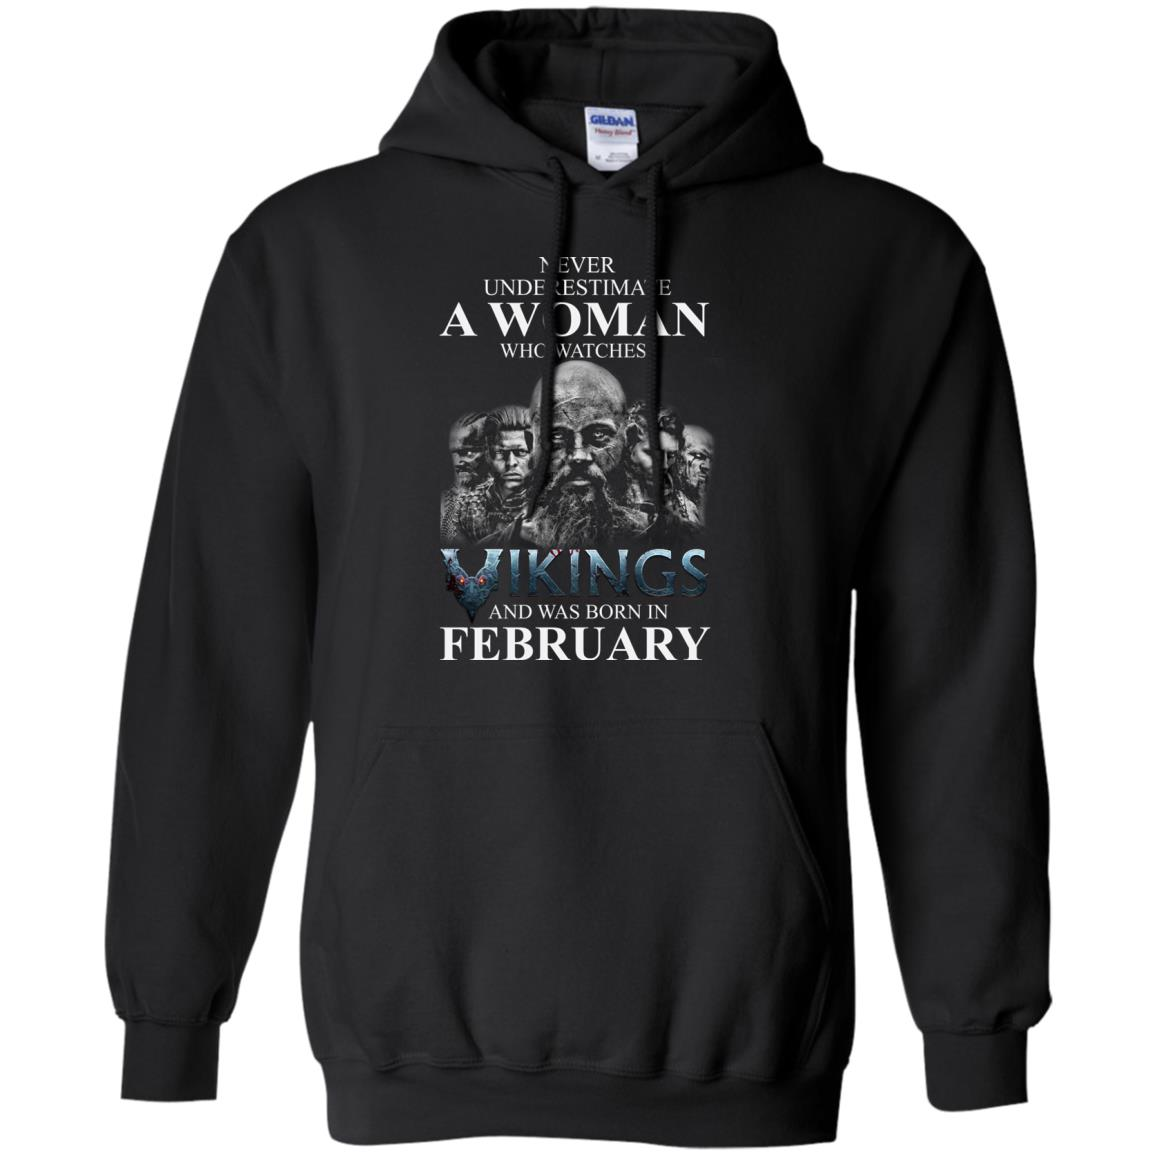 image 1343 - Never Underestimate A woman who watches Vikings and was born in February shirt